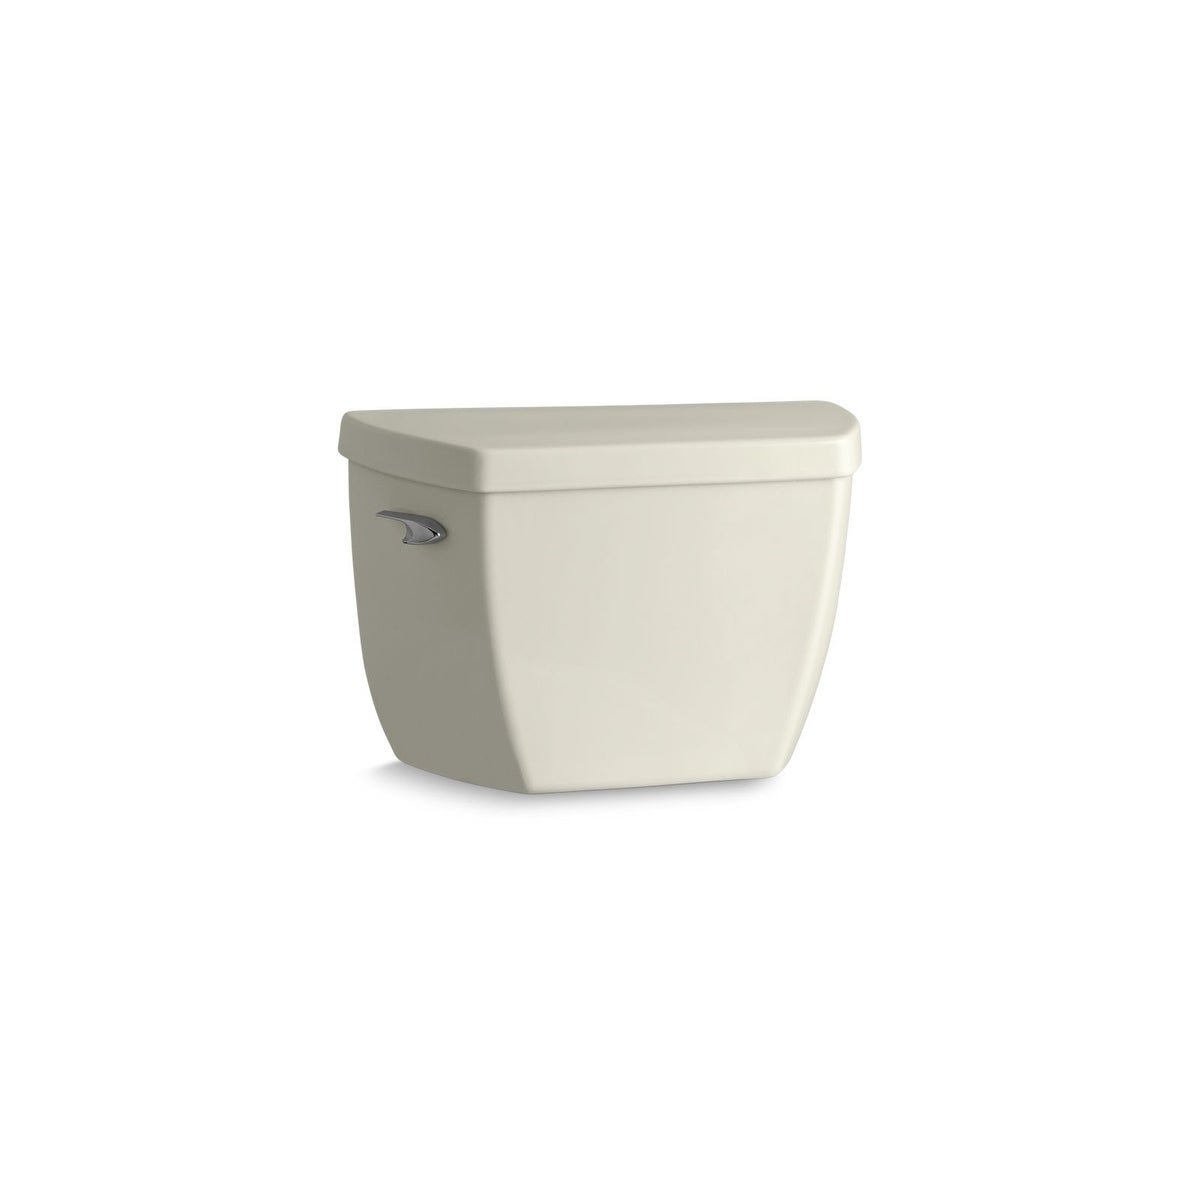 Off-White Toilets | Find Great Home Improvement Deals Shopping at ...